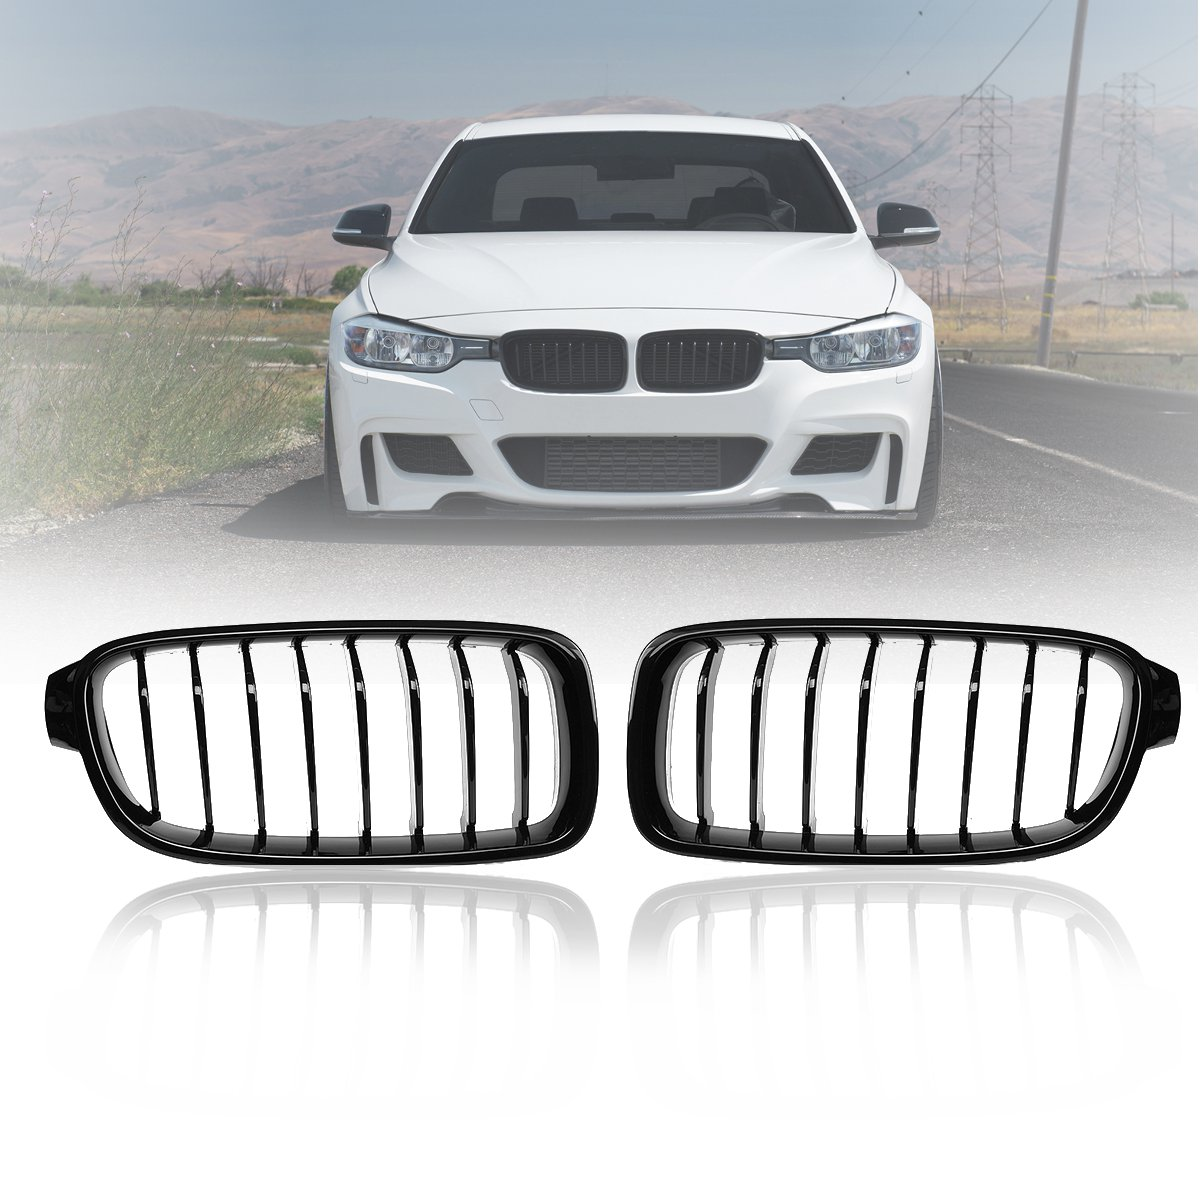 Pair Gloss Matt Carbon Black 3 Color Front Kidney Grille For BMW 3 Series F30 <font><b>F31</b></font> F35 F80 2012 2013-2017 Racing Grills image